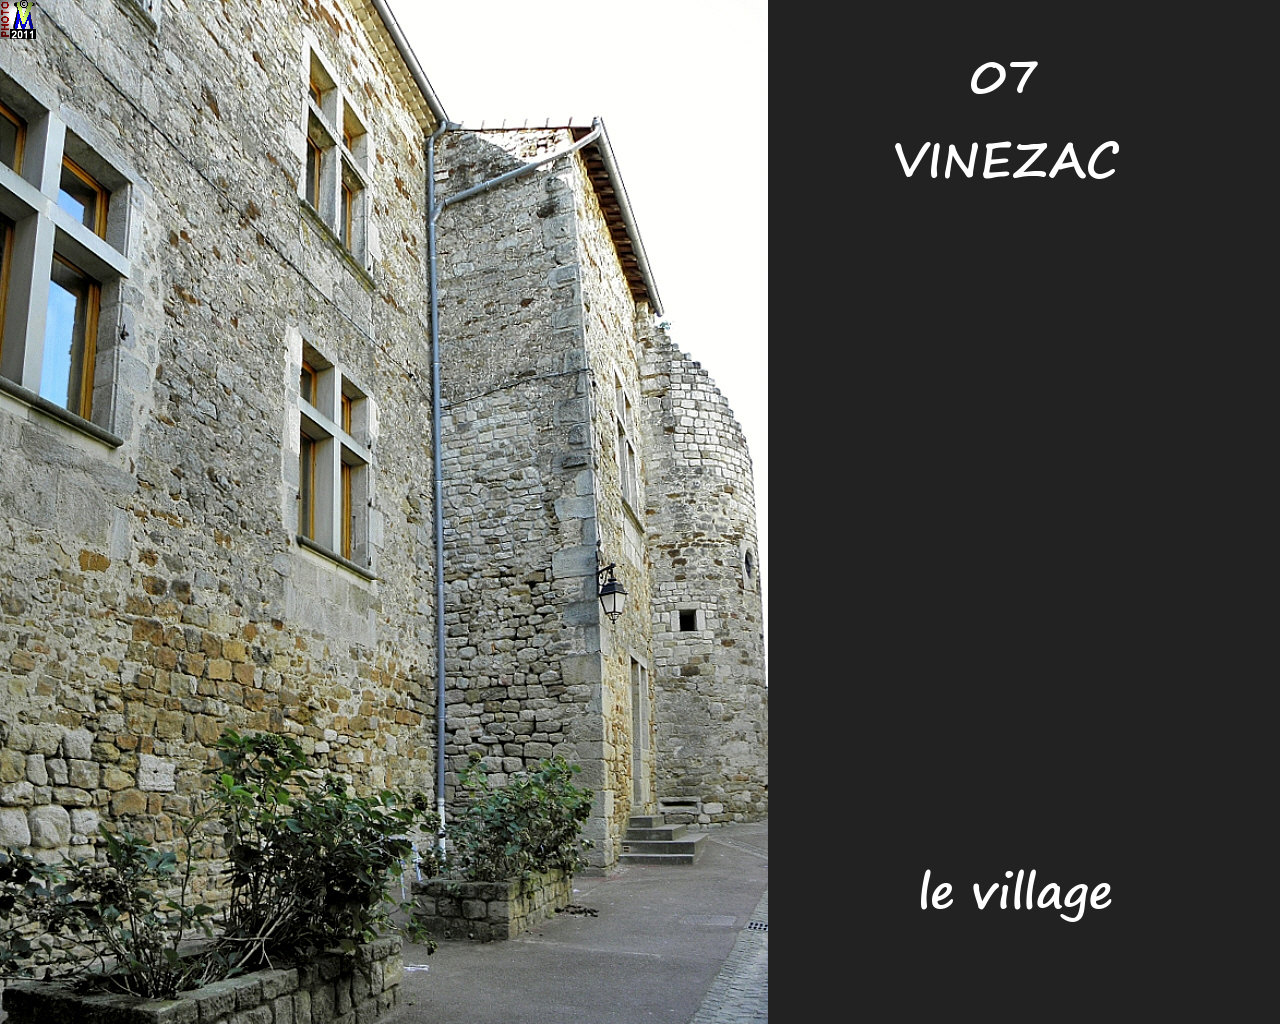 07VINEZAC_village_142.jpg